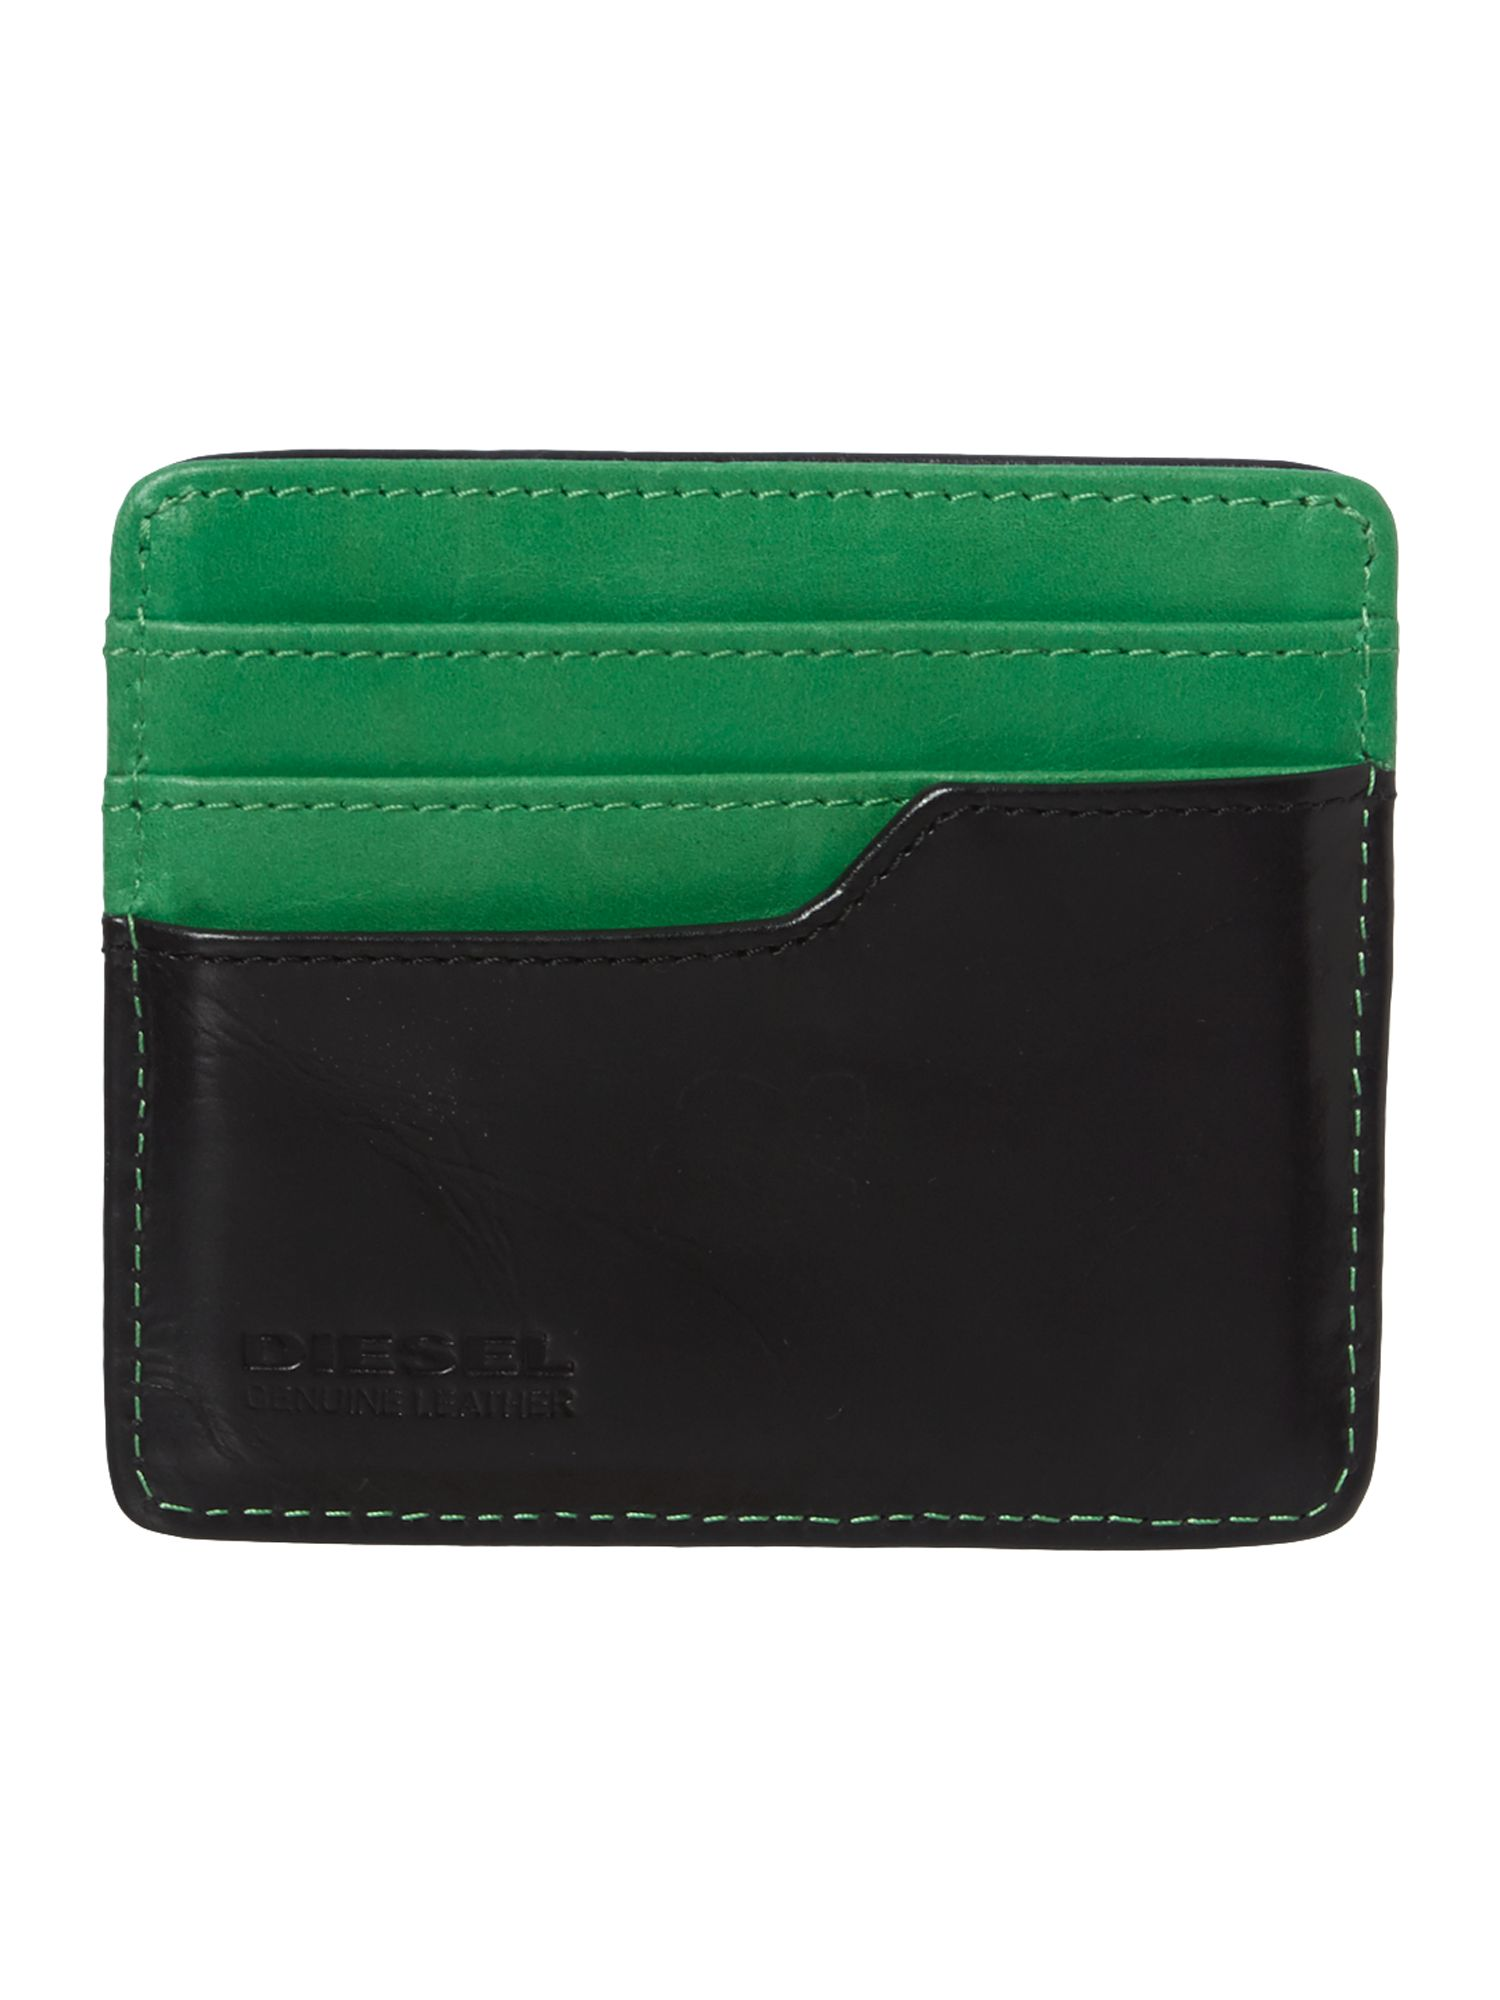 Green contrast jonas card holder